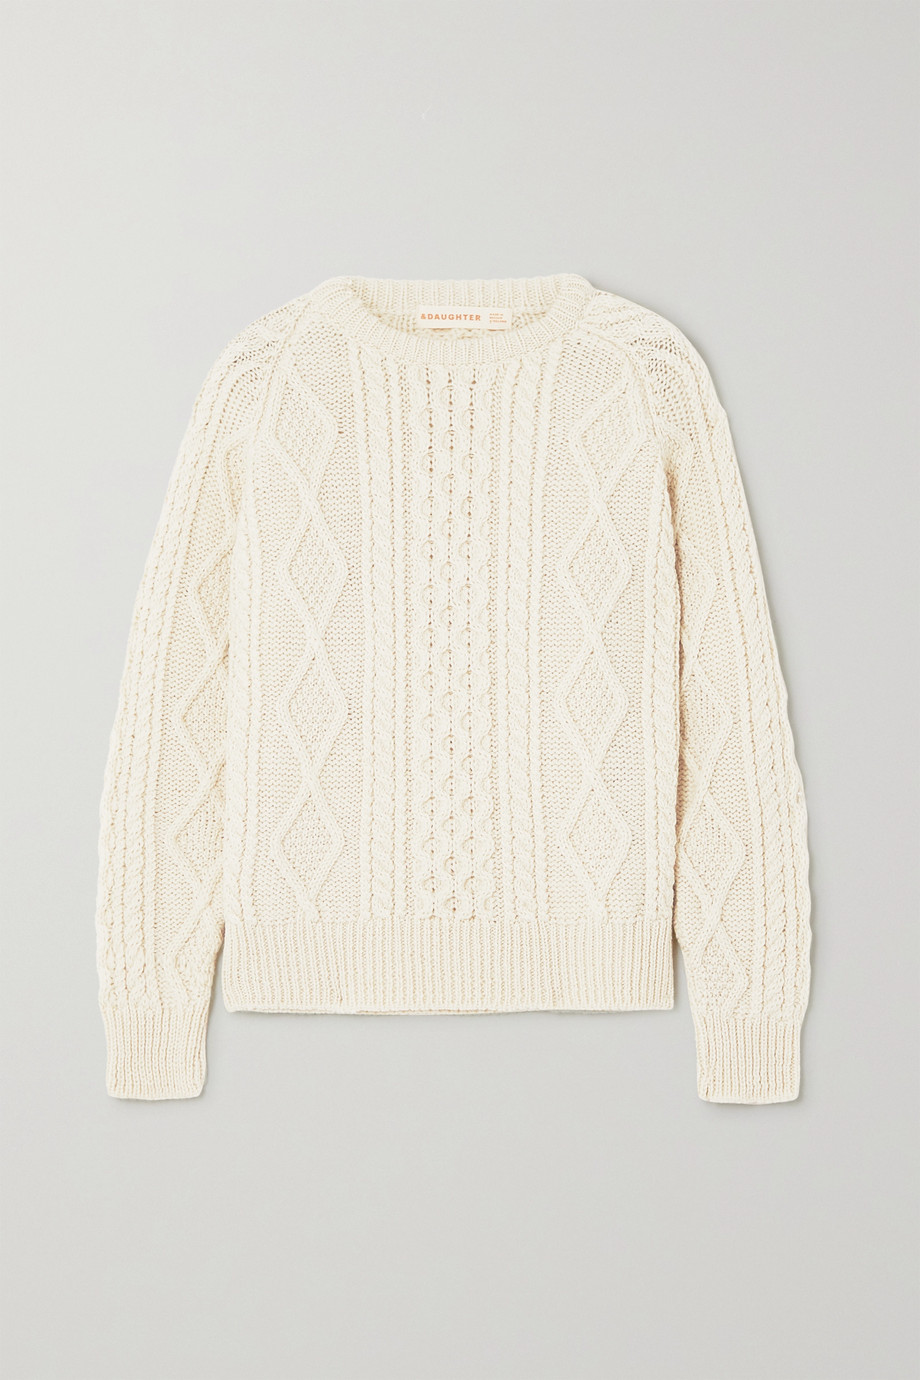 &Daughter Doris cable-knit wool sweater